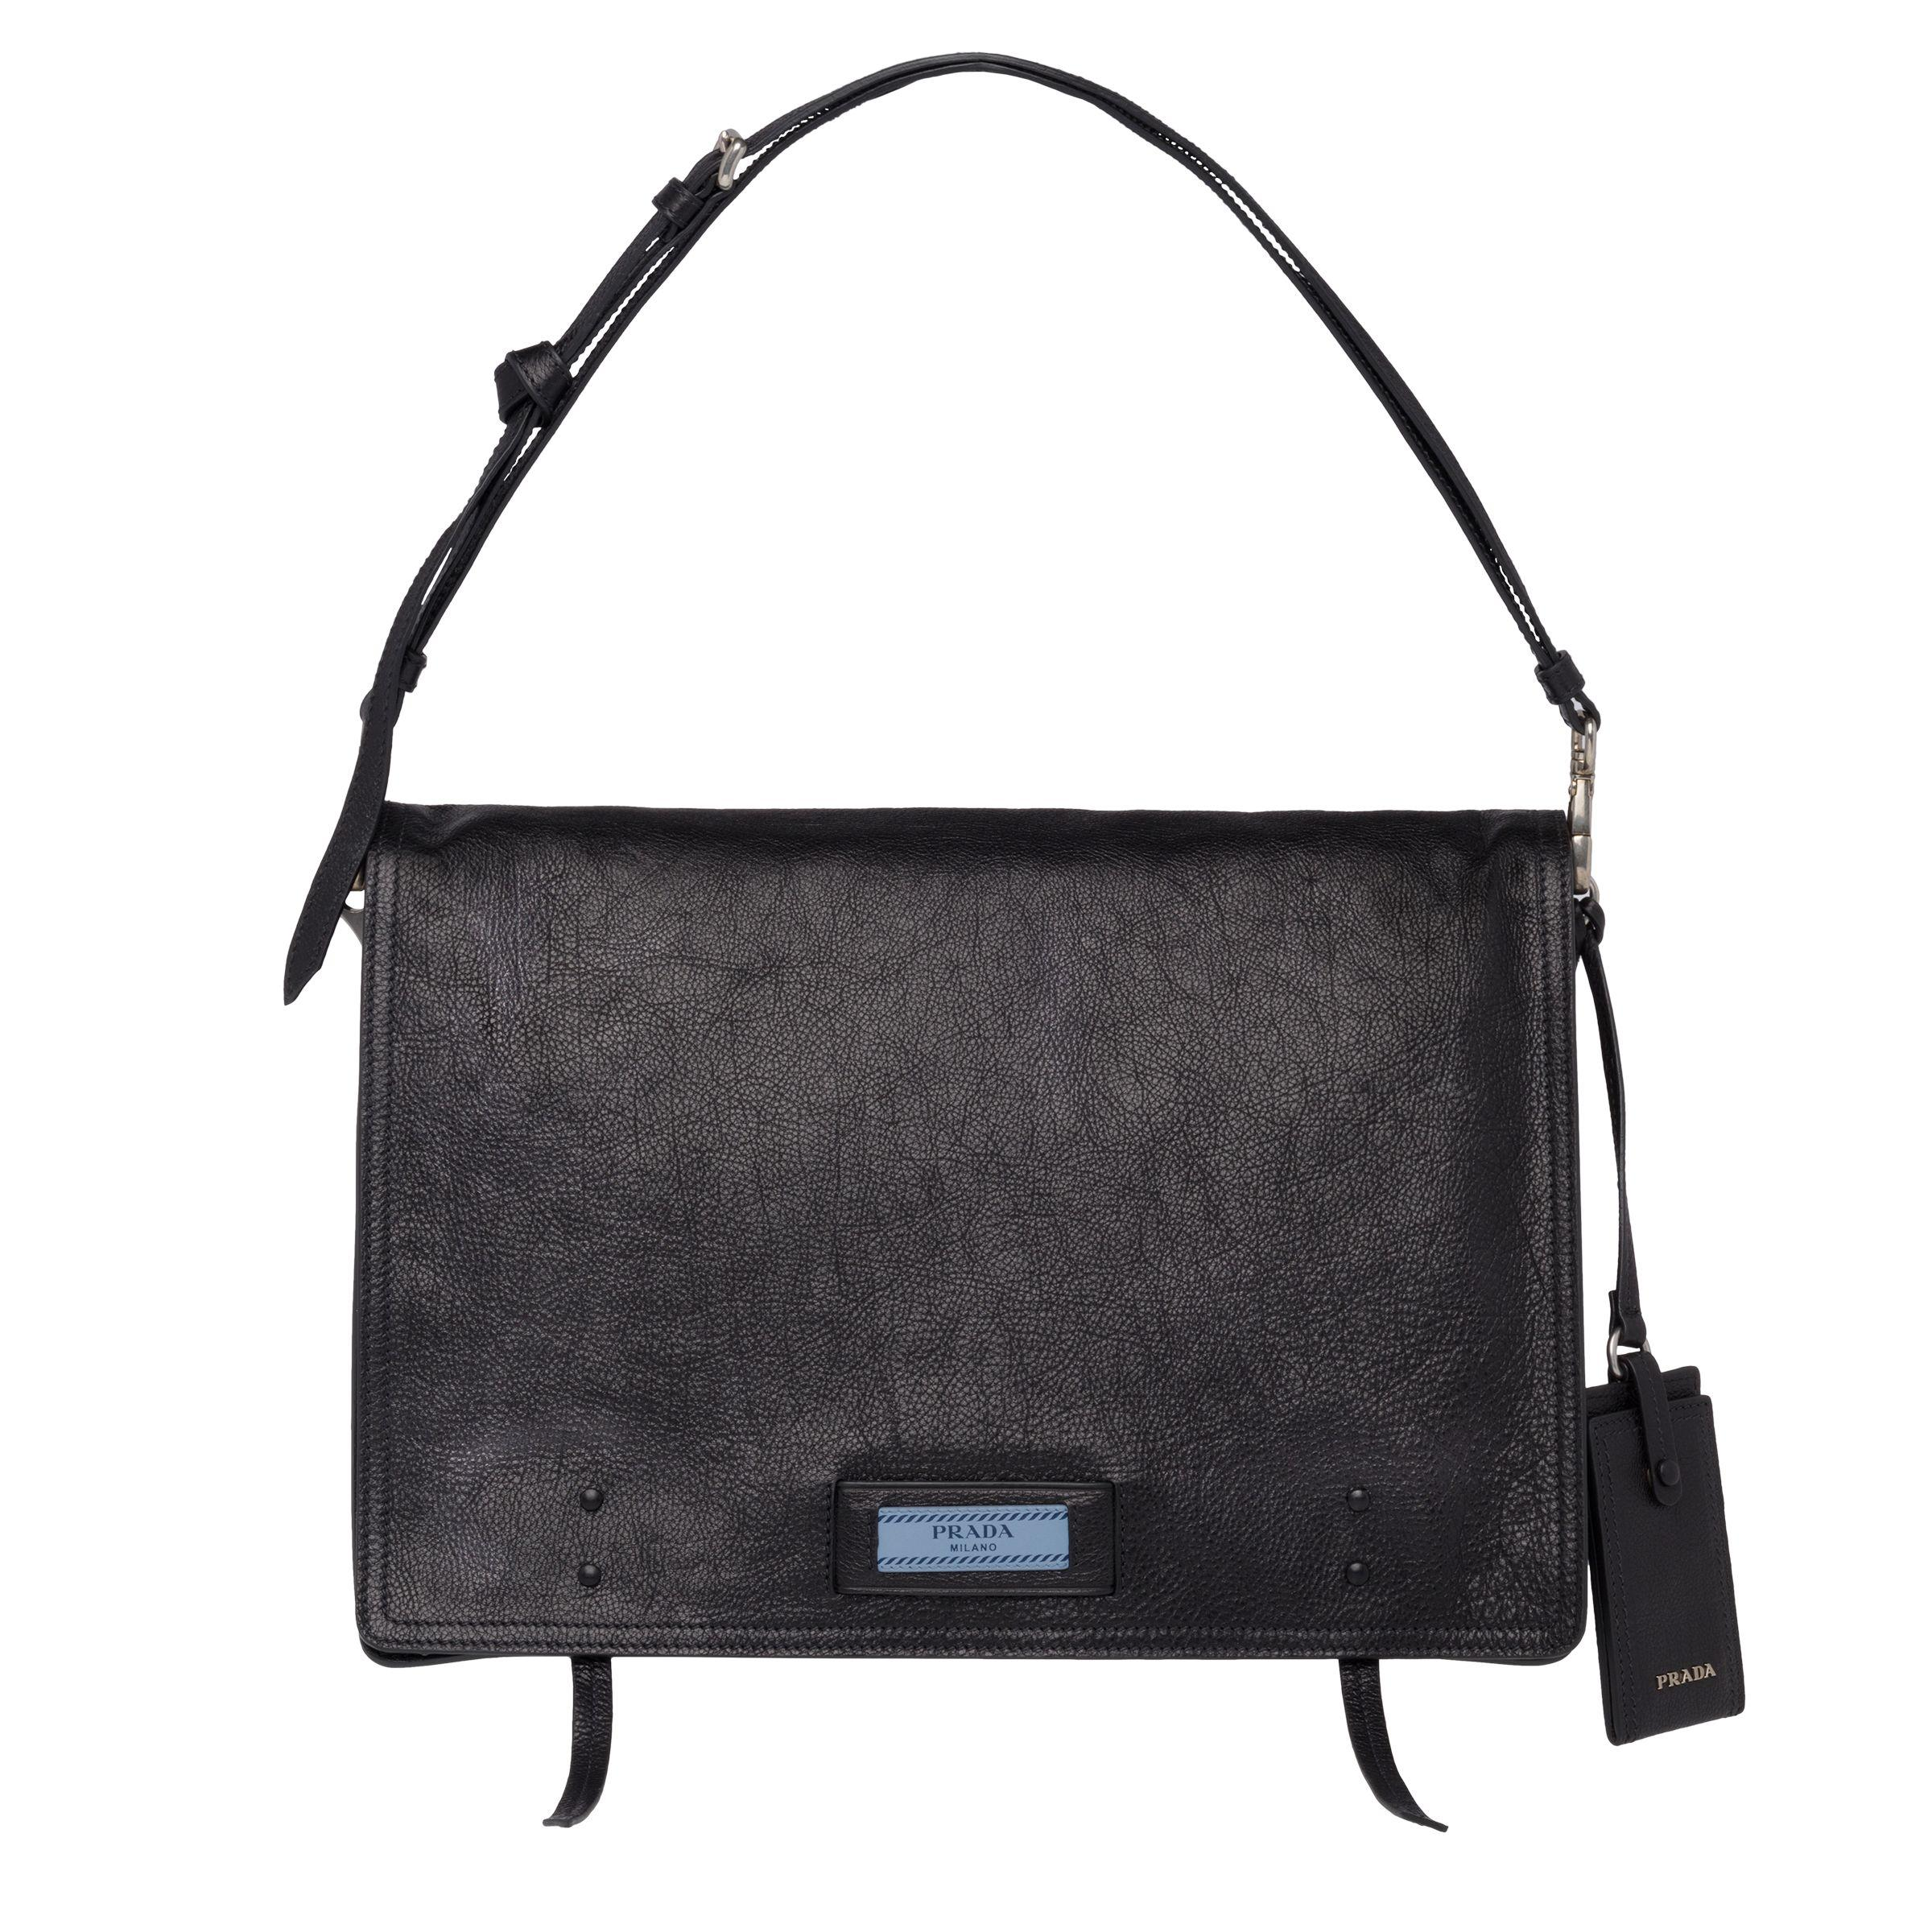 10a2c8c3c86f89 Prada - Black Etiquette Leather Shoulder Bag - Lyst. View fullscreen